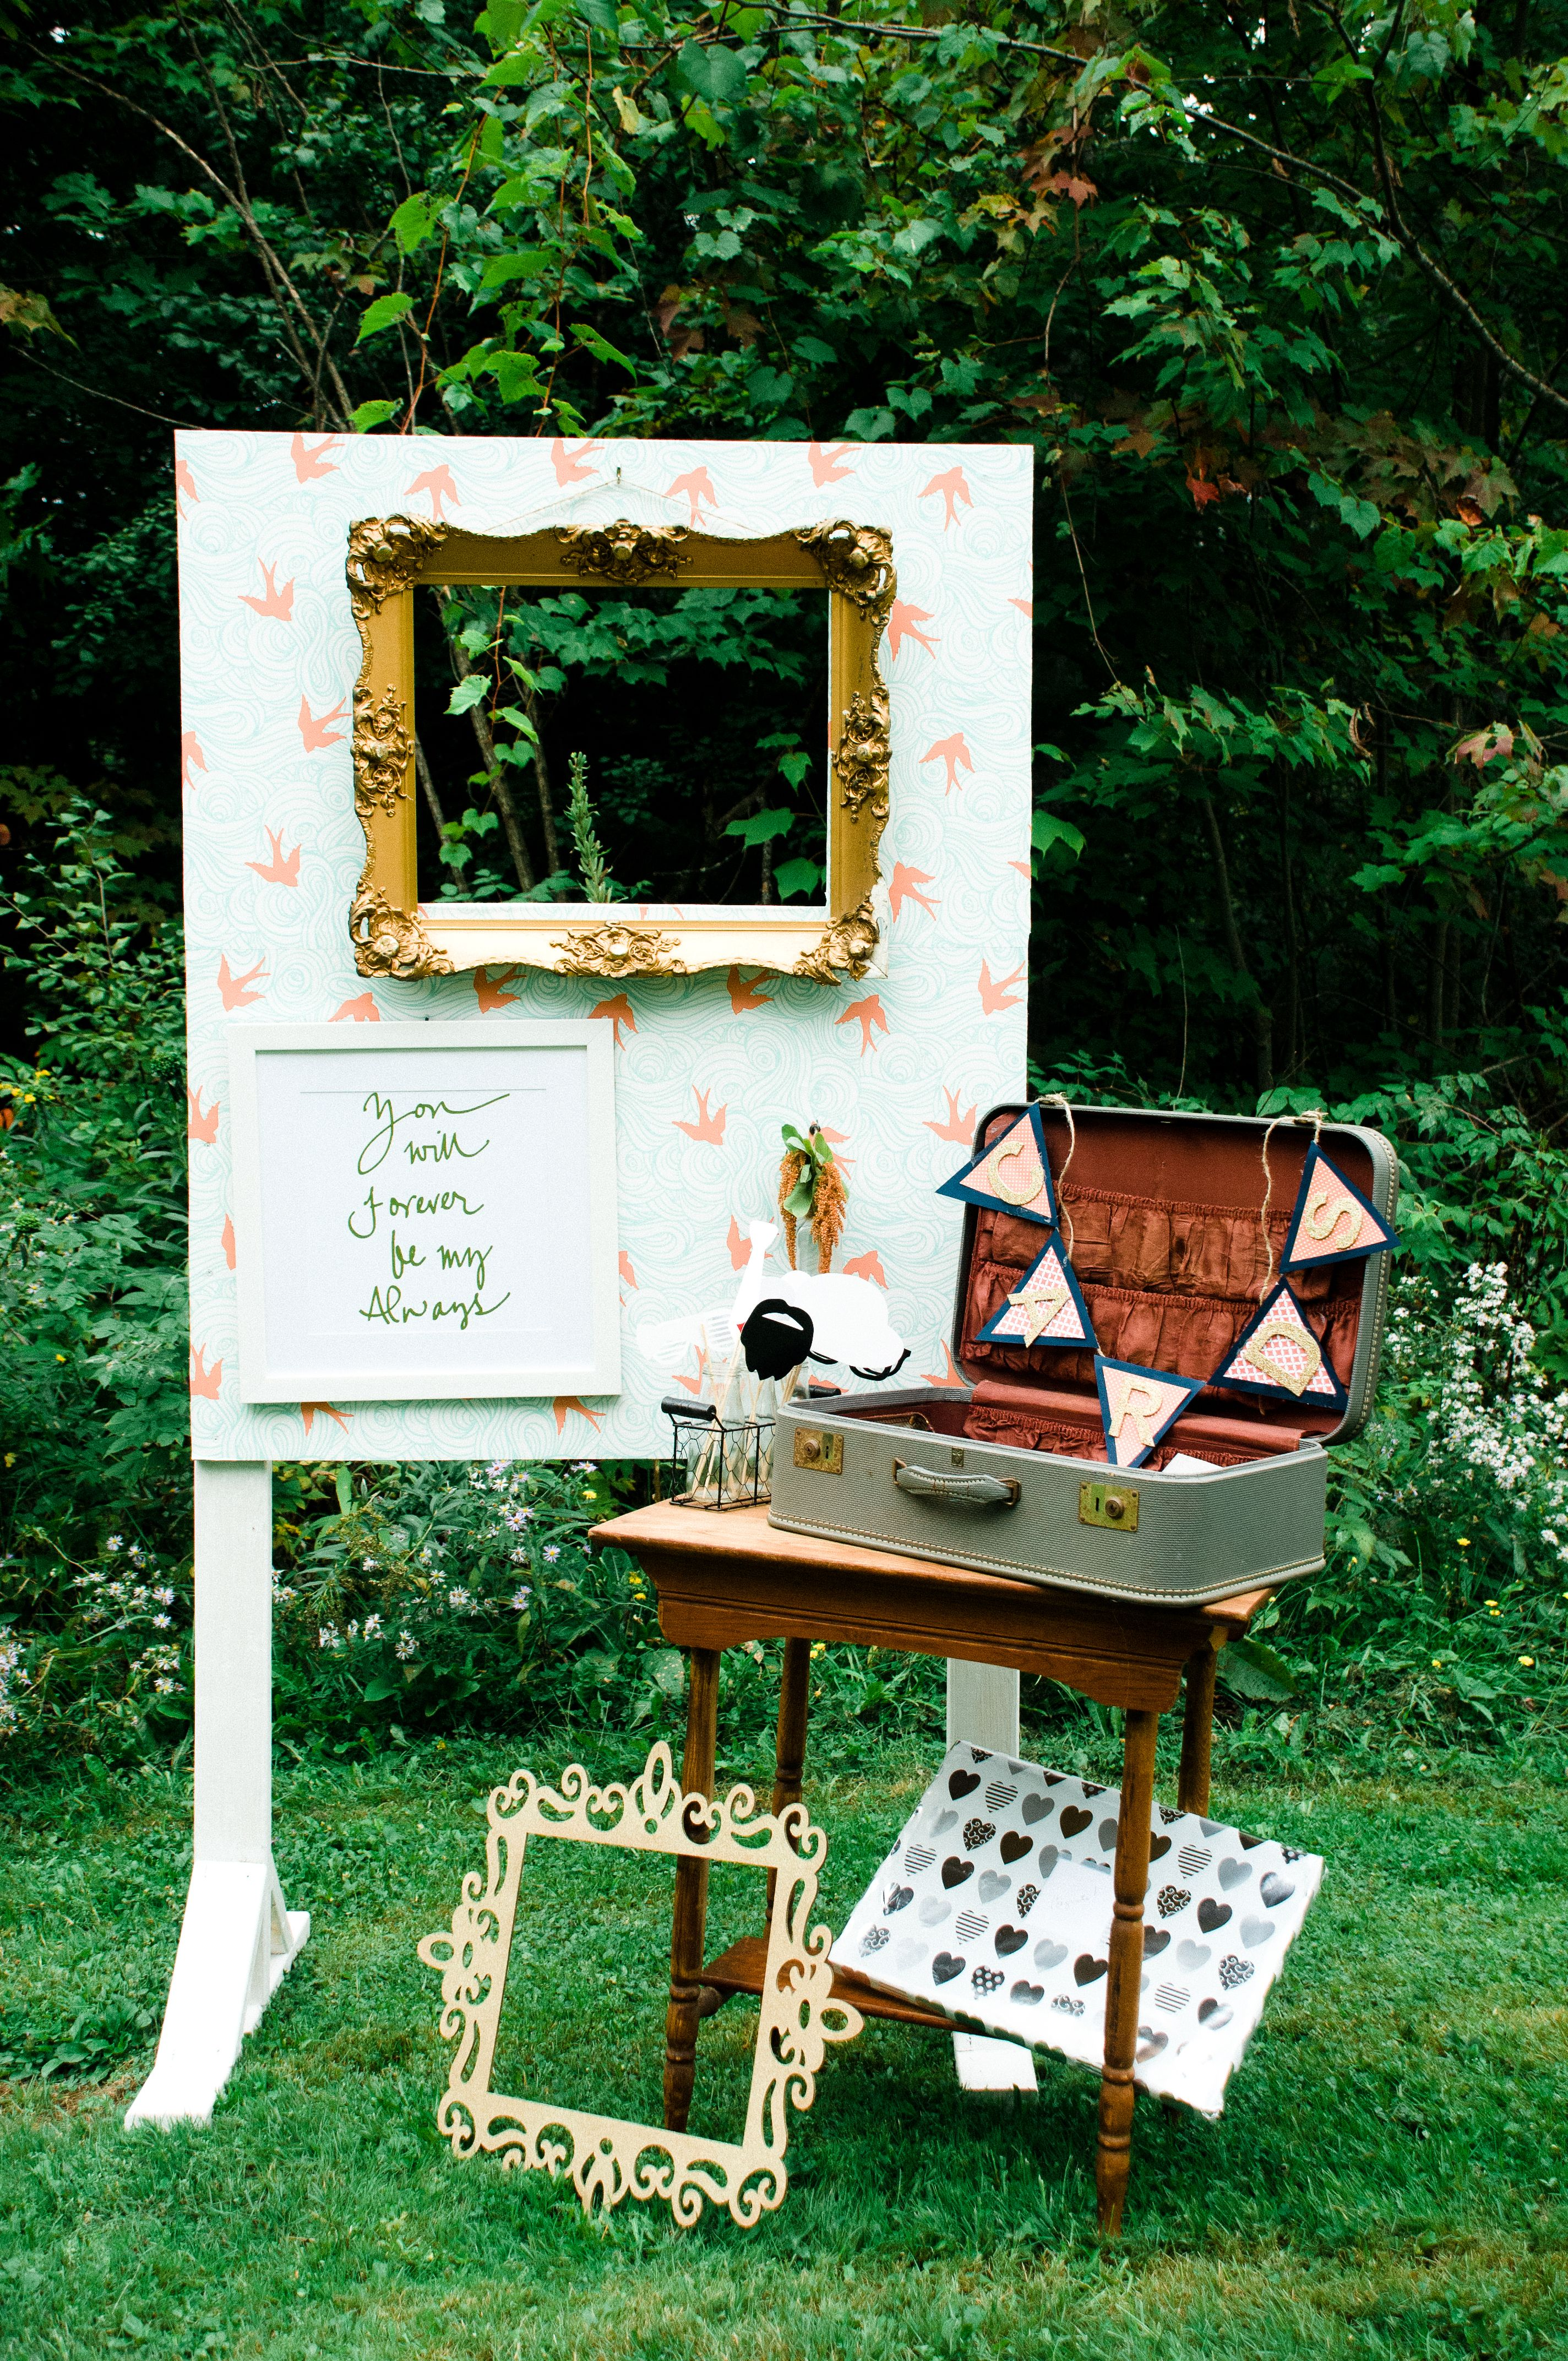 Wedding Photography Booth Ideas.Rustic Outdoor Gold Blue And Orange Wedding Photo Booth Ideas